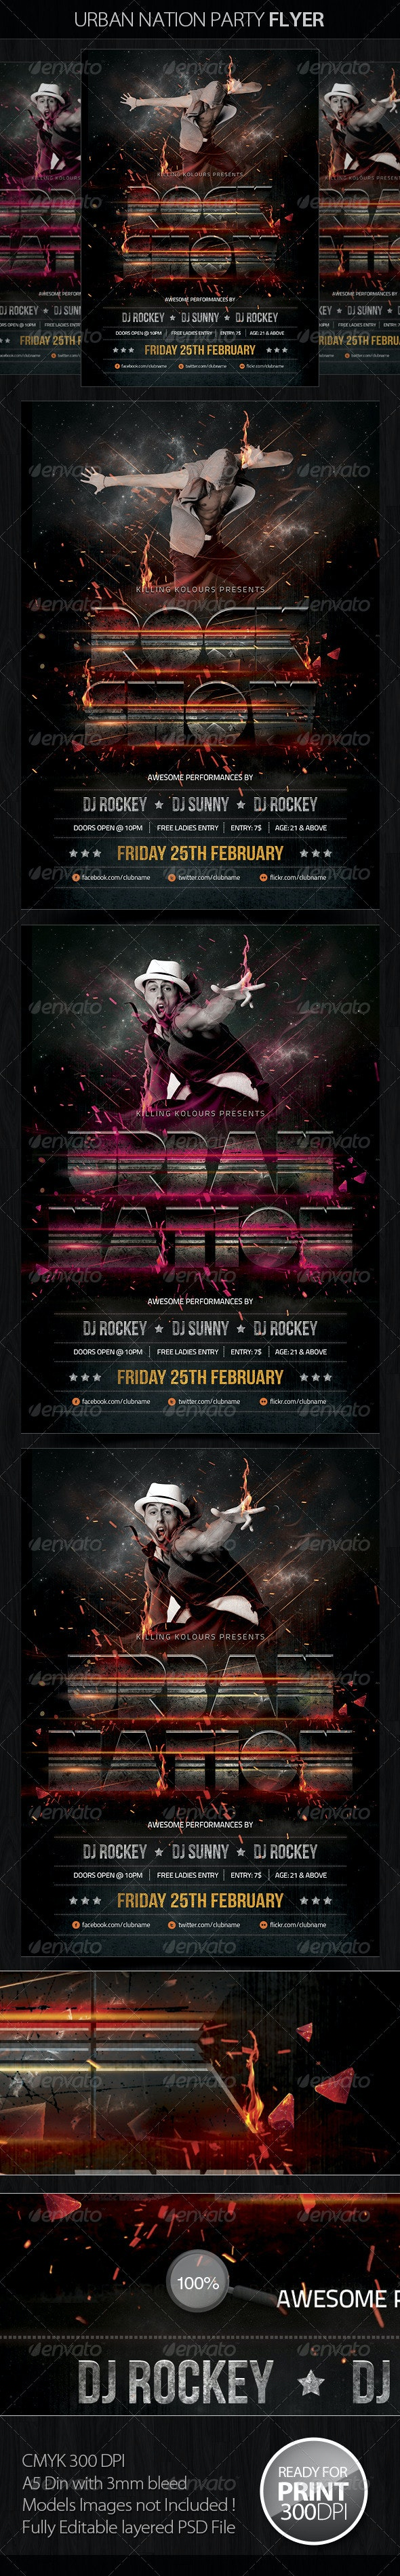 Urban Nation Party Flyer - Clubs & Parties Events